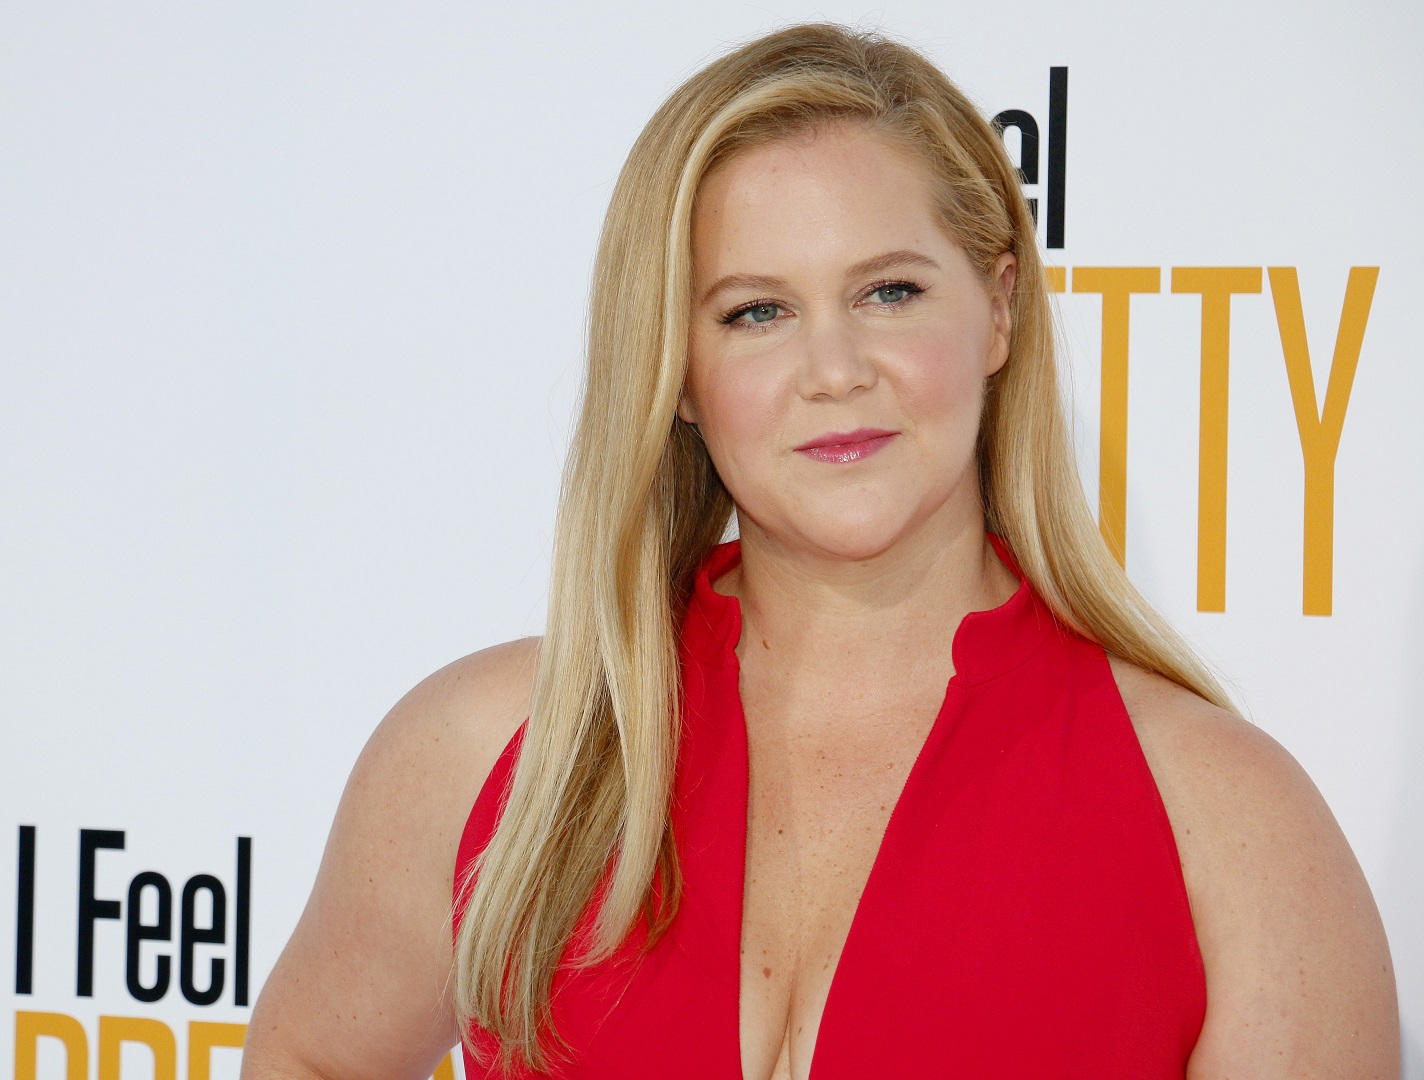 Amy Schumer Red Dress I Feel Pretty Premiere